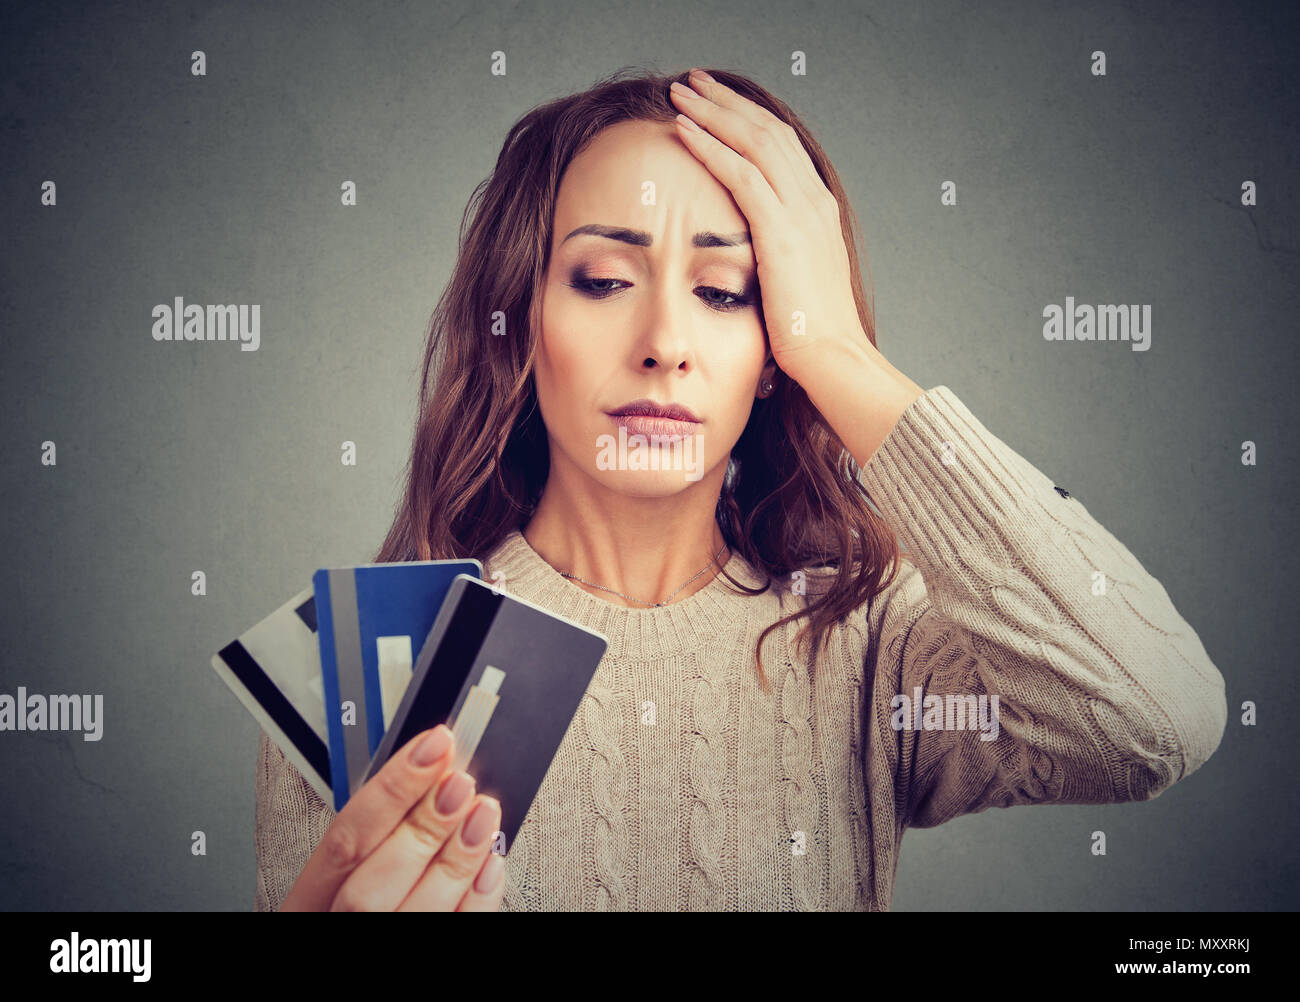 Young woman holding credit cards and looking stressed having financial problems. - Stock Image